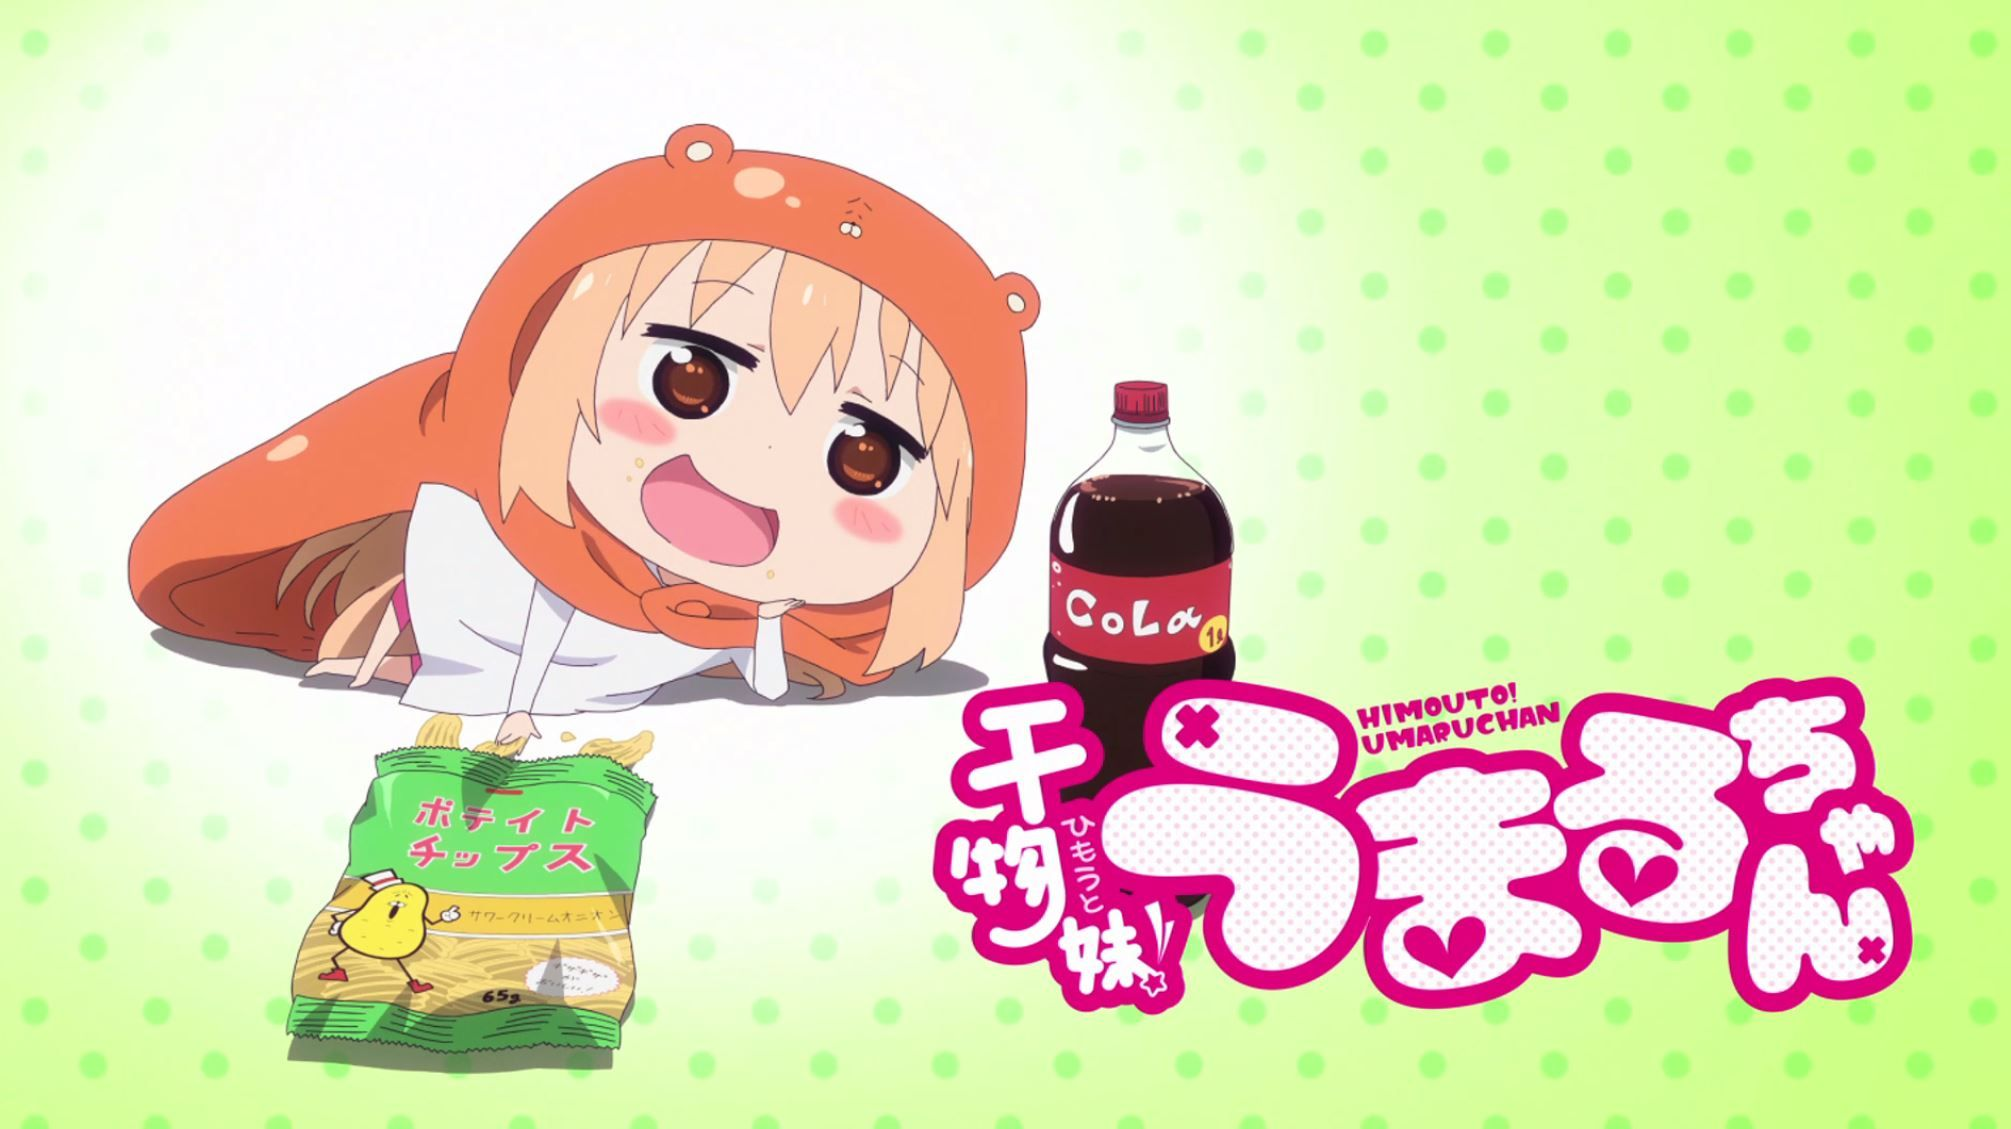 She Presents Herself As A Well Mannered Girl In Public The Real Umaru Is Selfish Greedy And Extremely Lazy Descript Himouto Umaru Chan Anime Anime Chibi